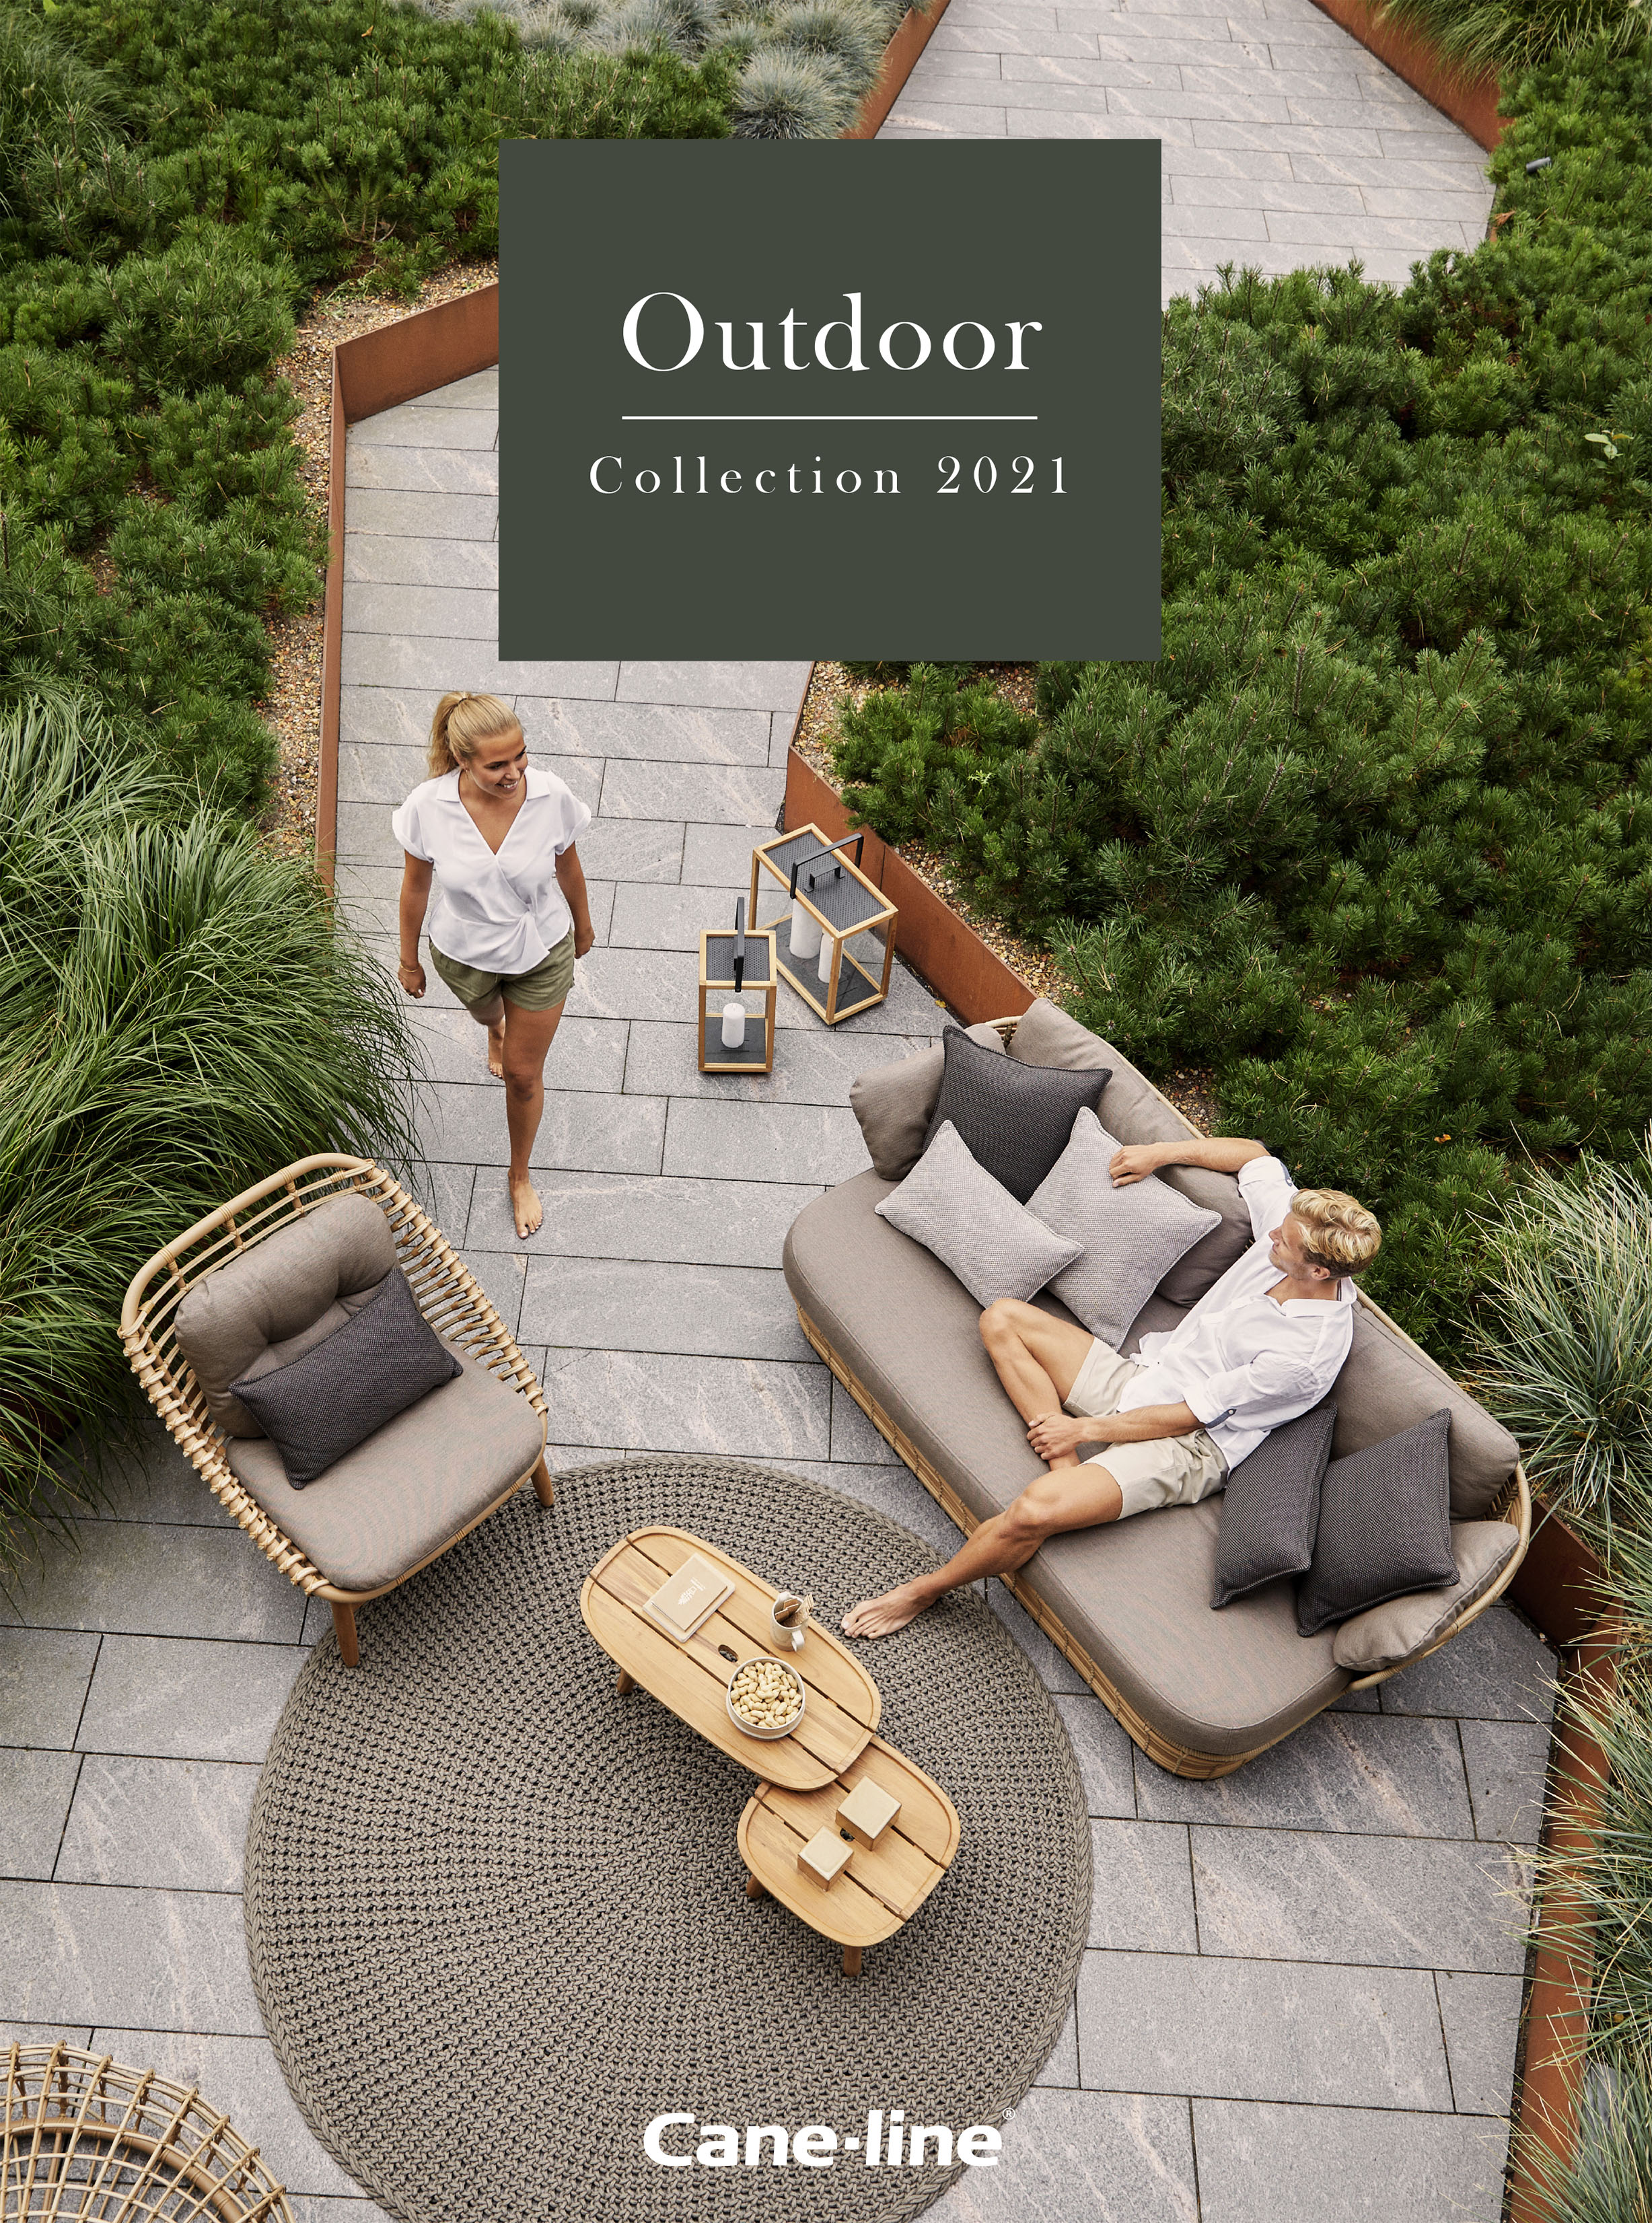 Cane-line Outdoor Brochure 2021